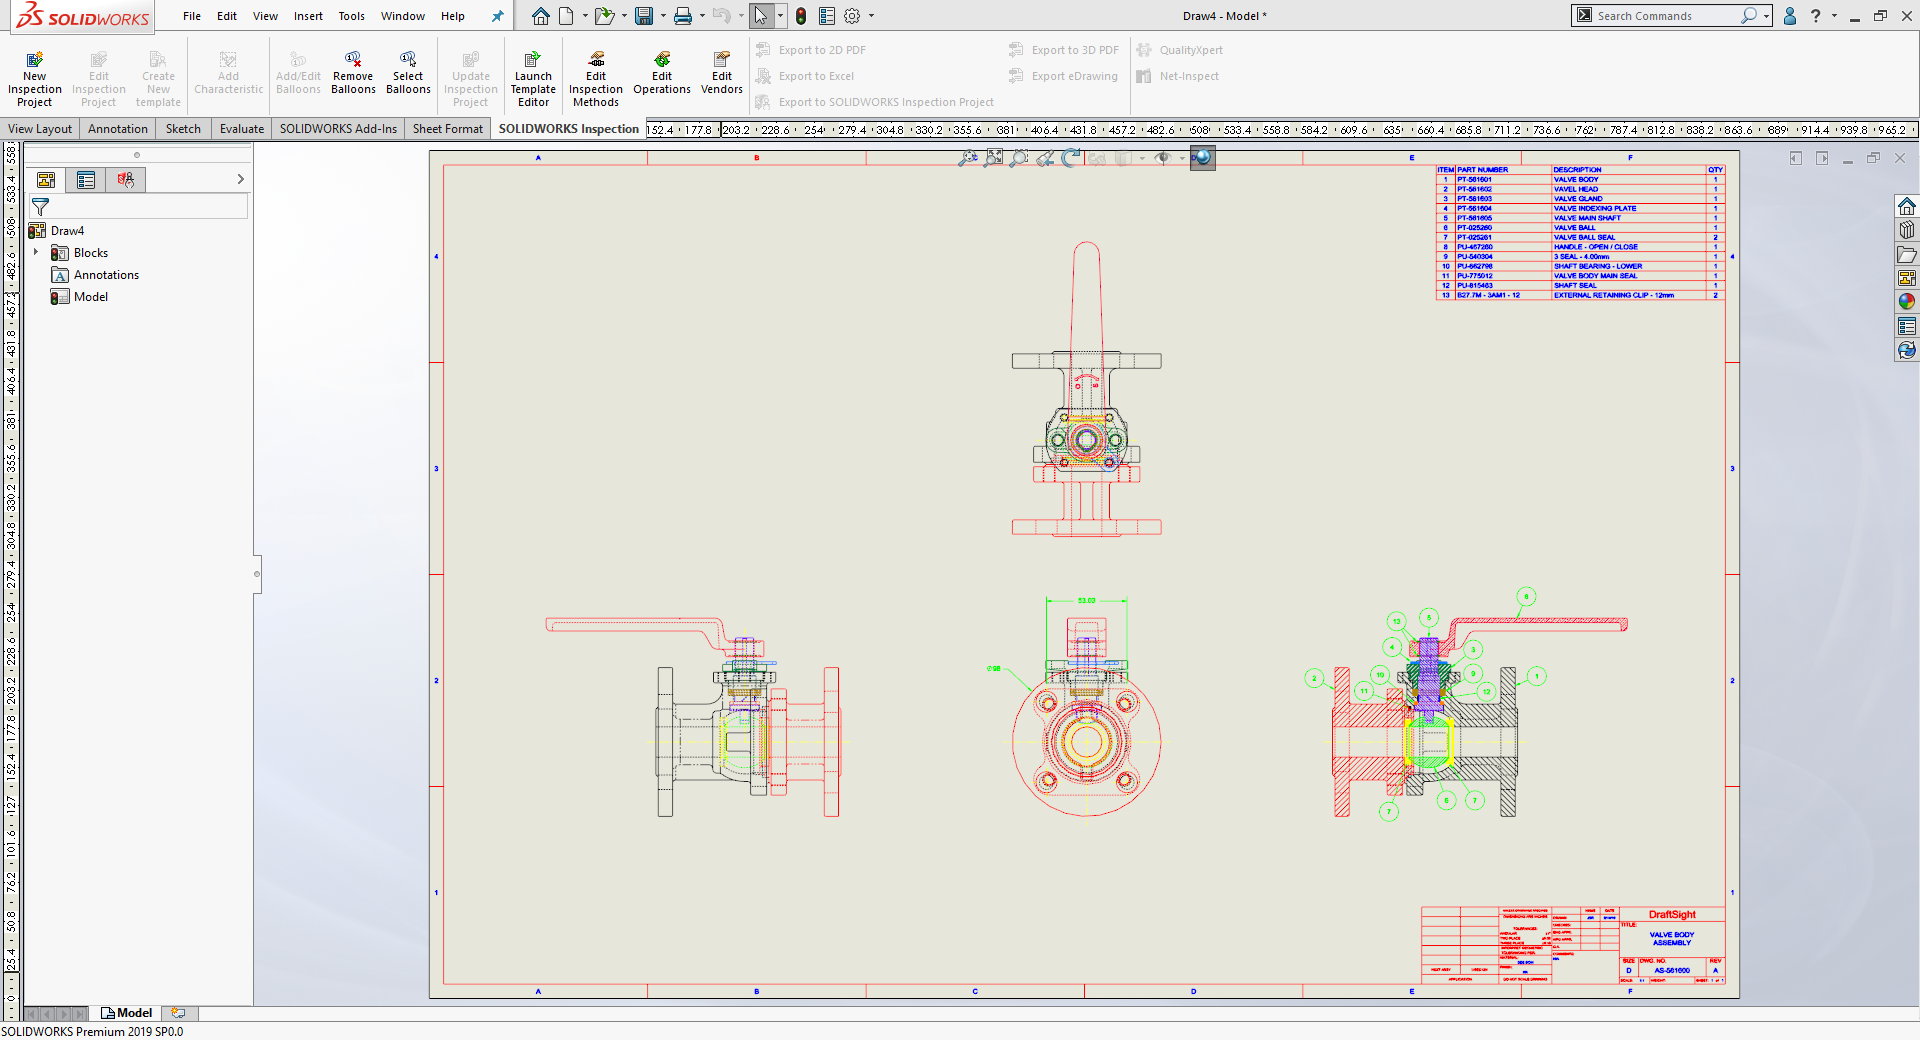 Embed the native DWG/DXF file within SOLIDWORKS